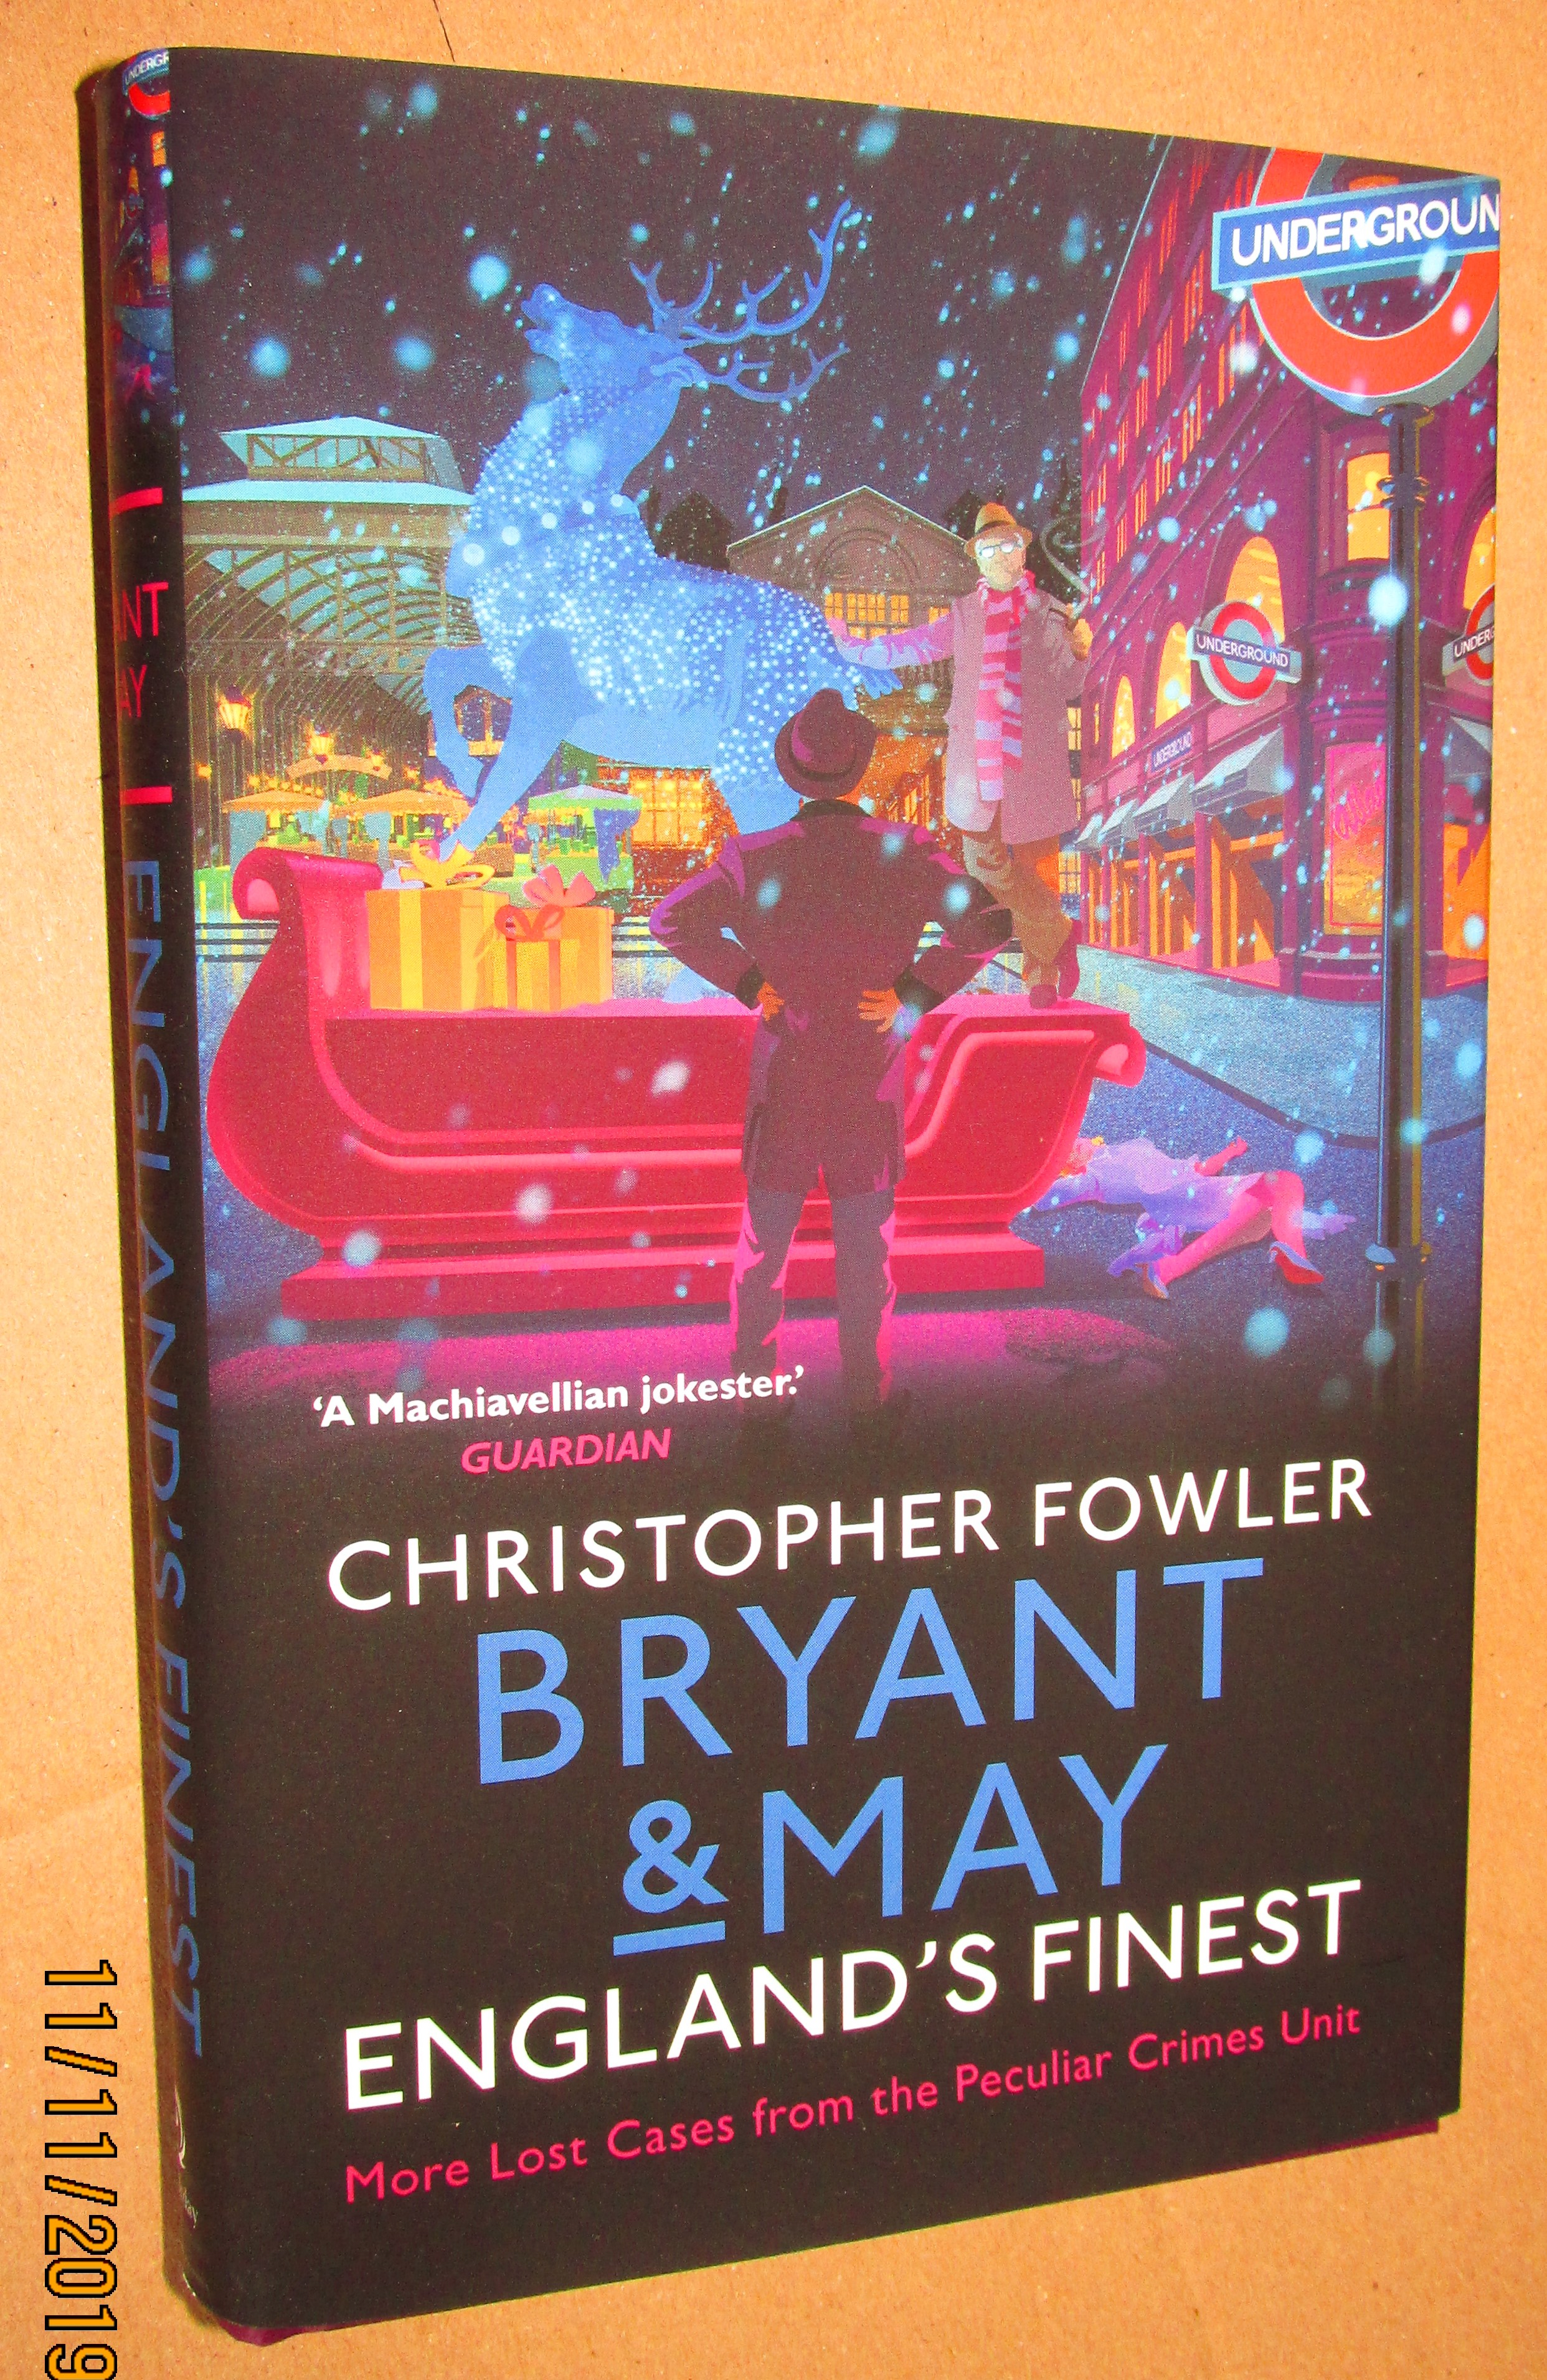 Image for Bryant and May England's Finest Unread Signed Lined Dated First Edition Hardback in Dustjacket